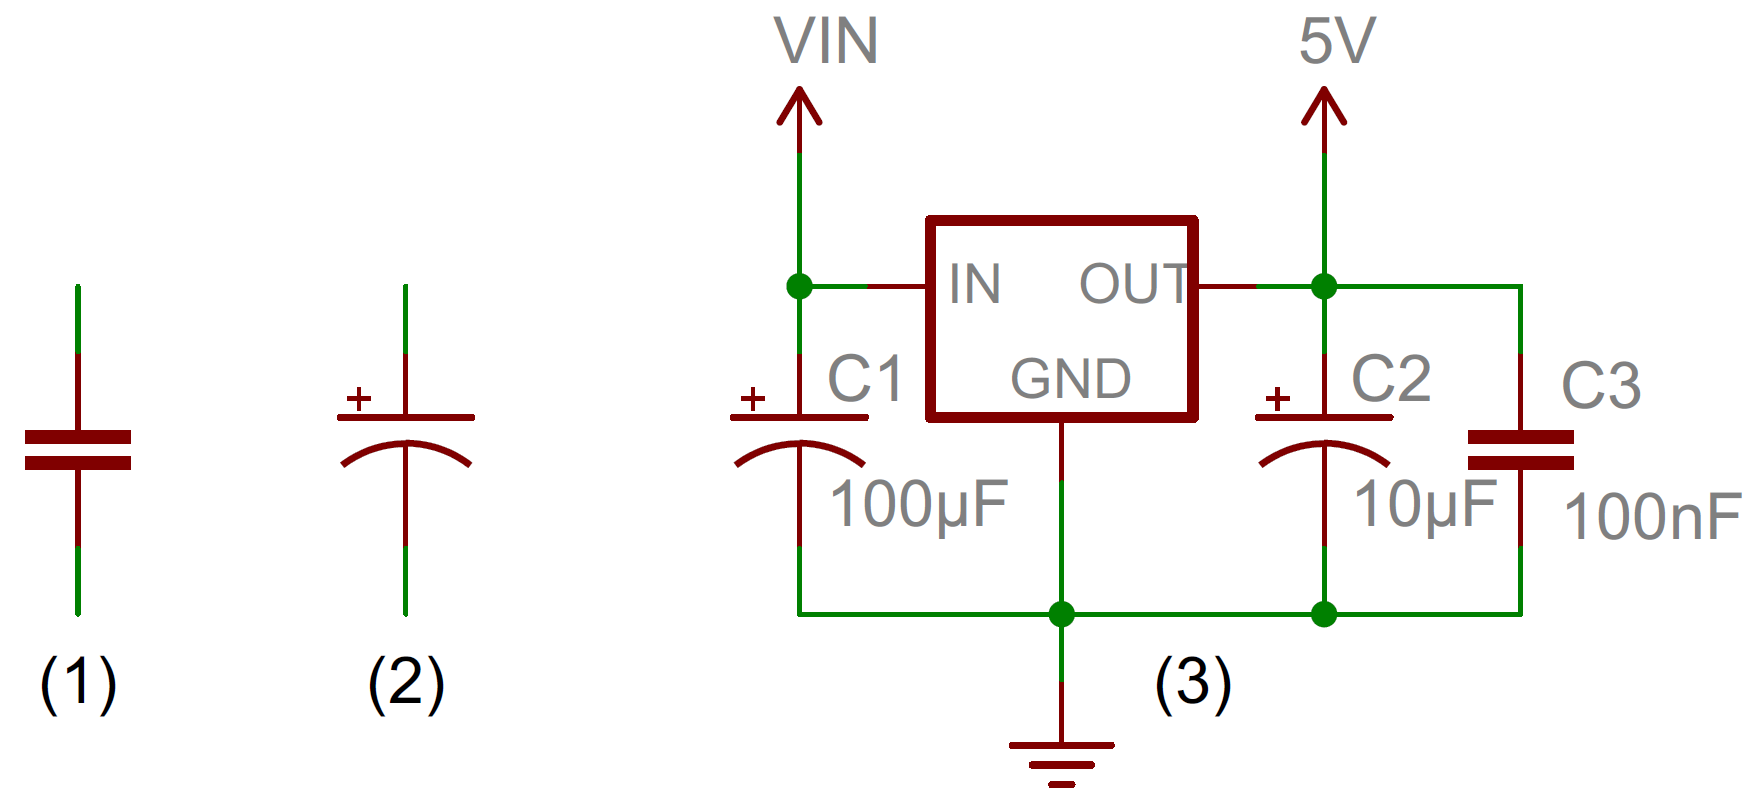 Capacitors Circuit Diagram Tutorial Capacitor Symbols